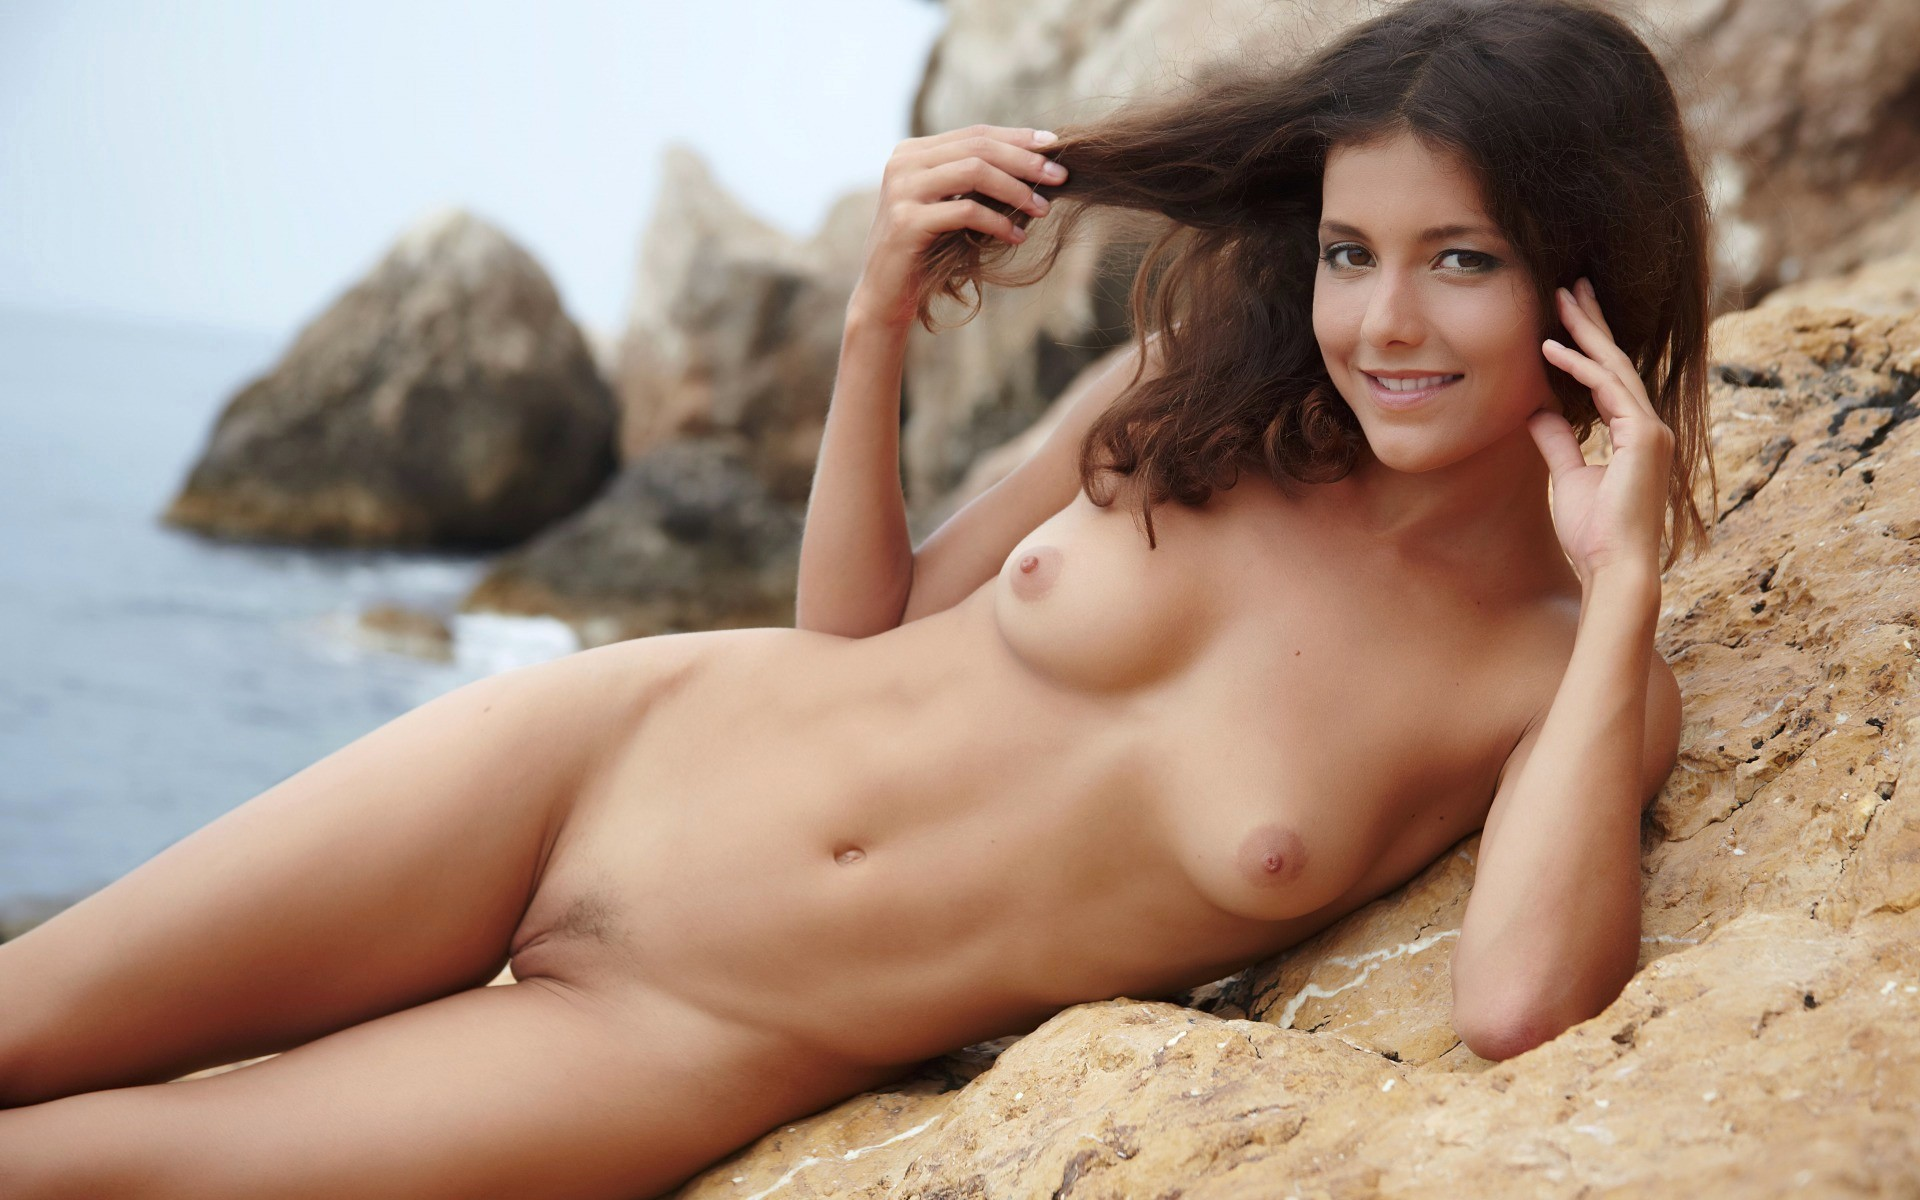 Naked girls thumbnails hot girls sexy